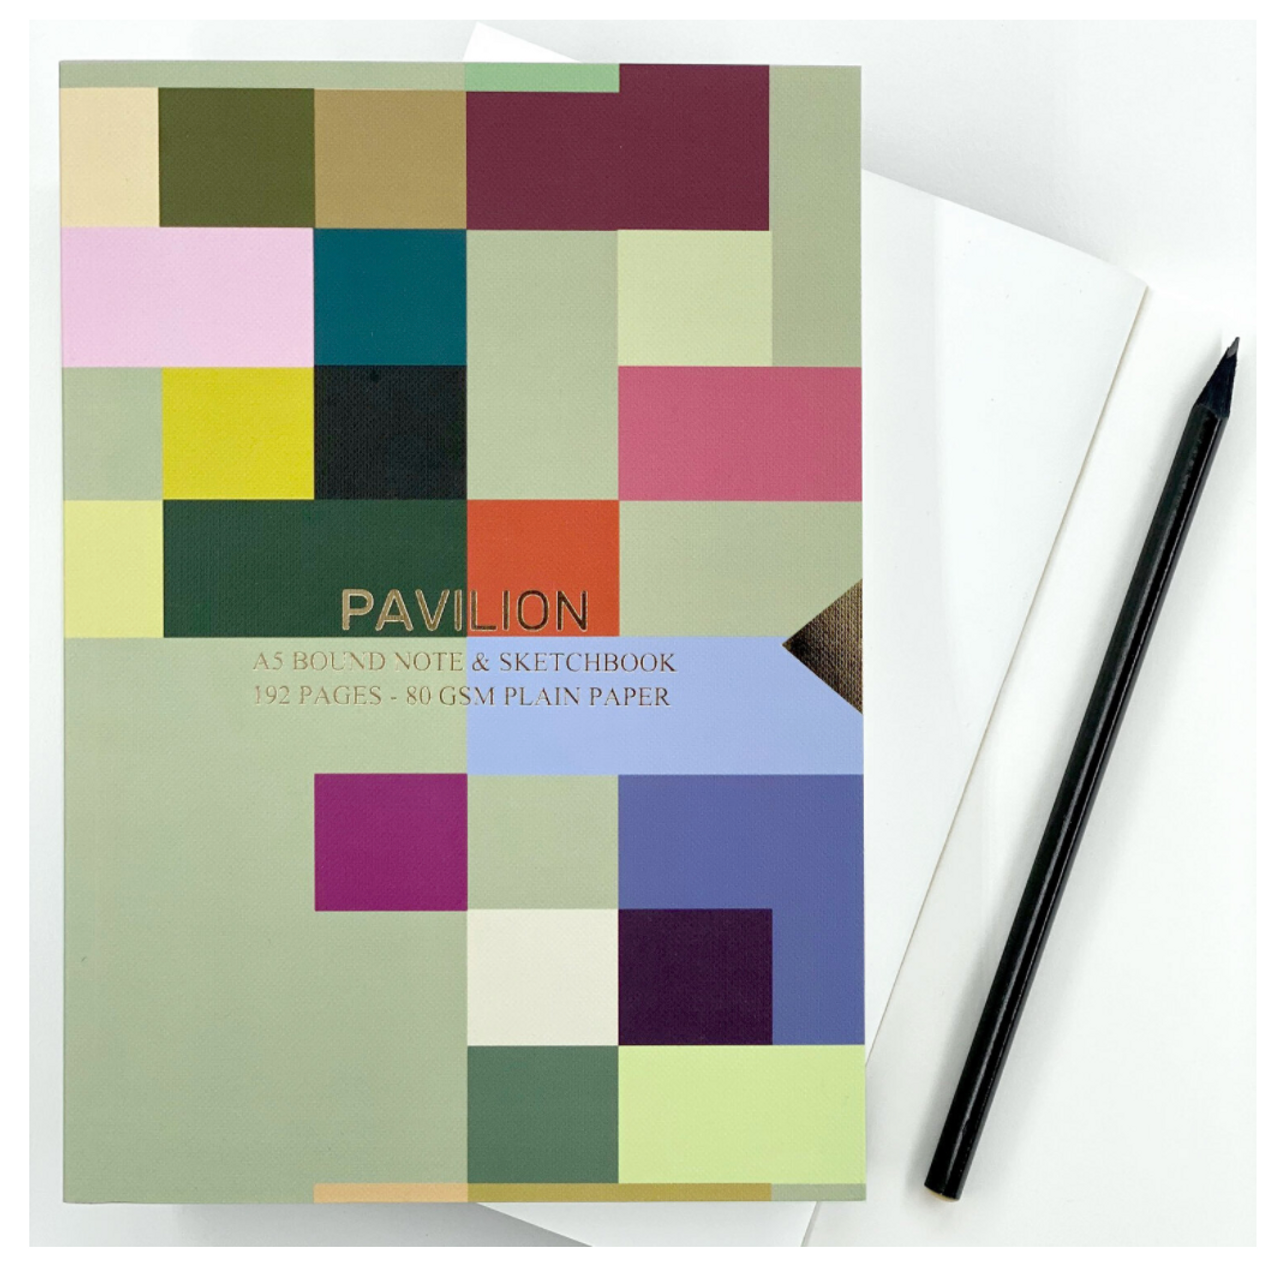 Pavilion A5 buckram embossed notebook, madras